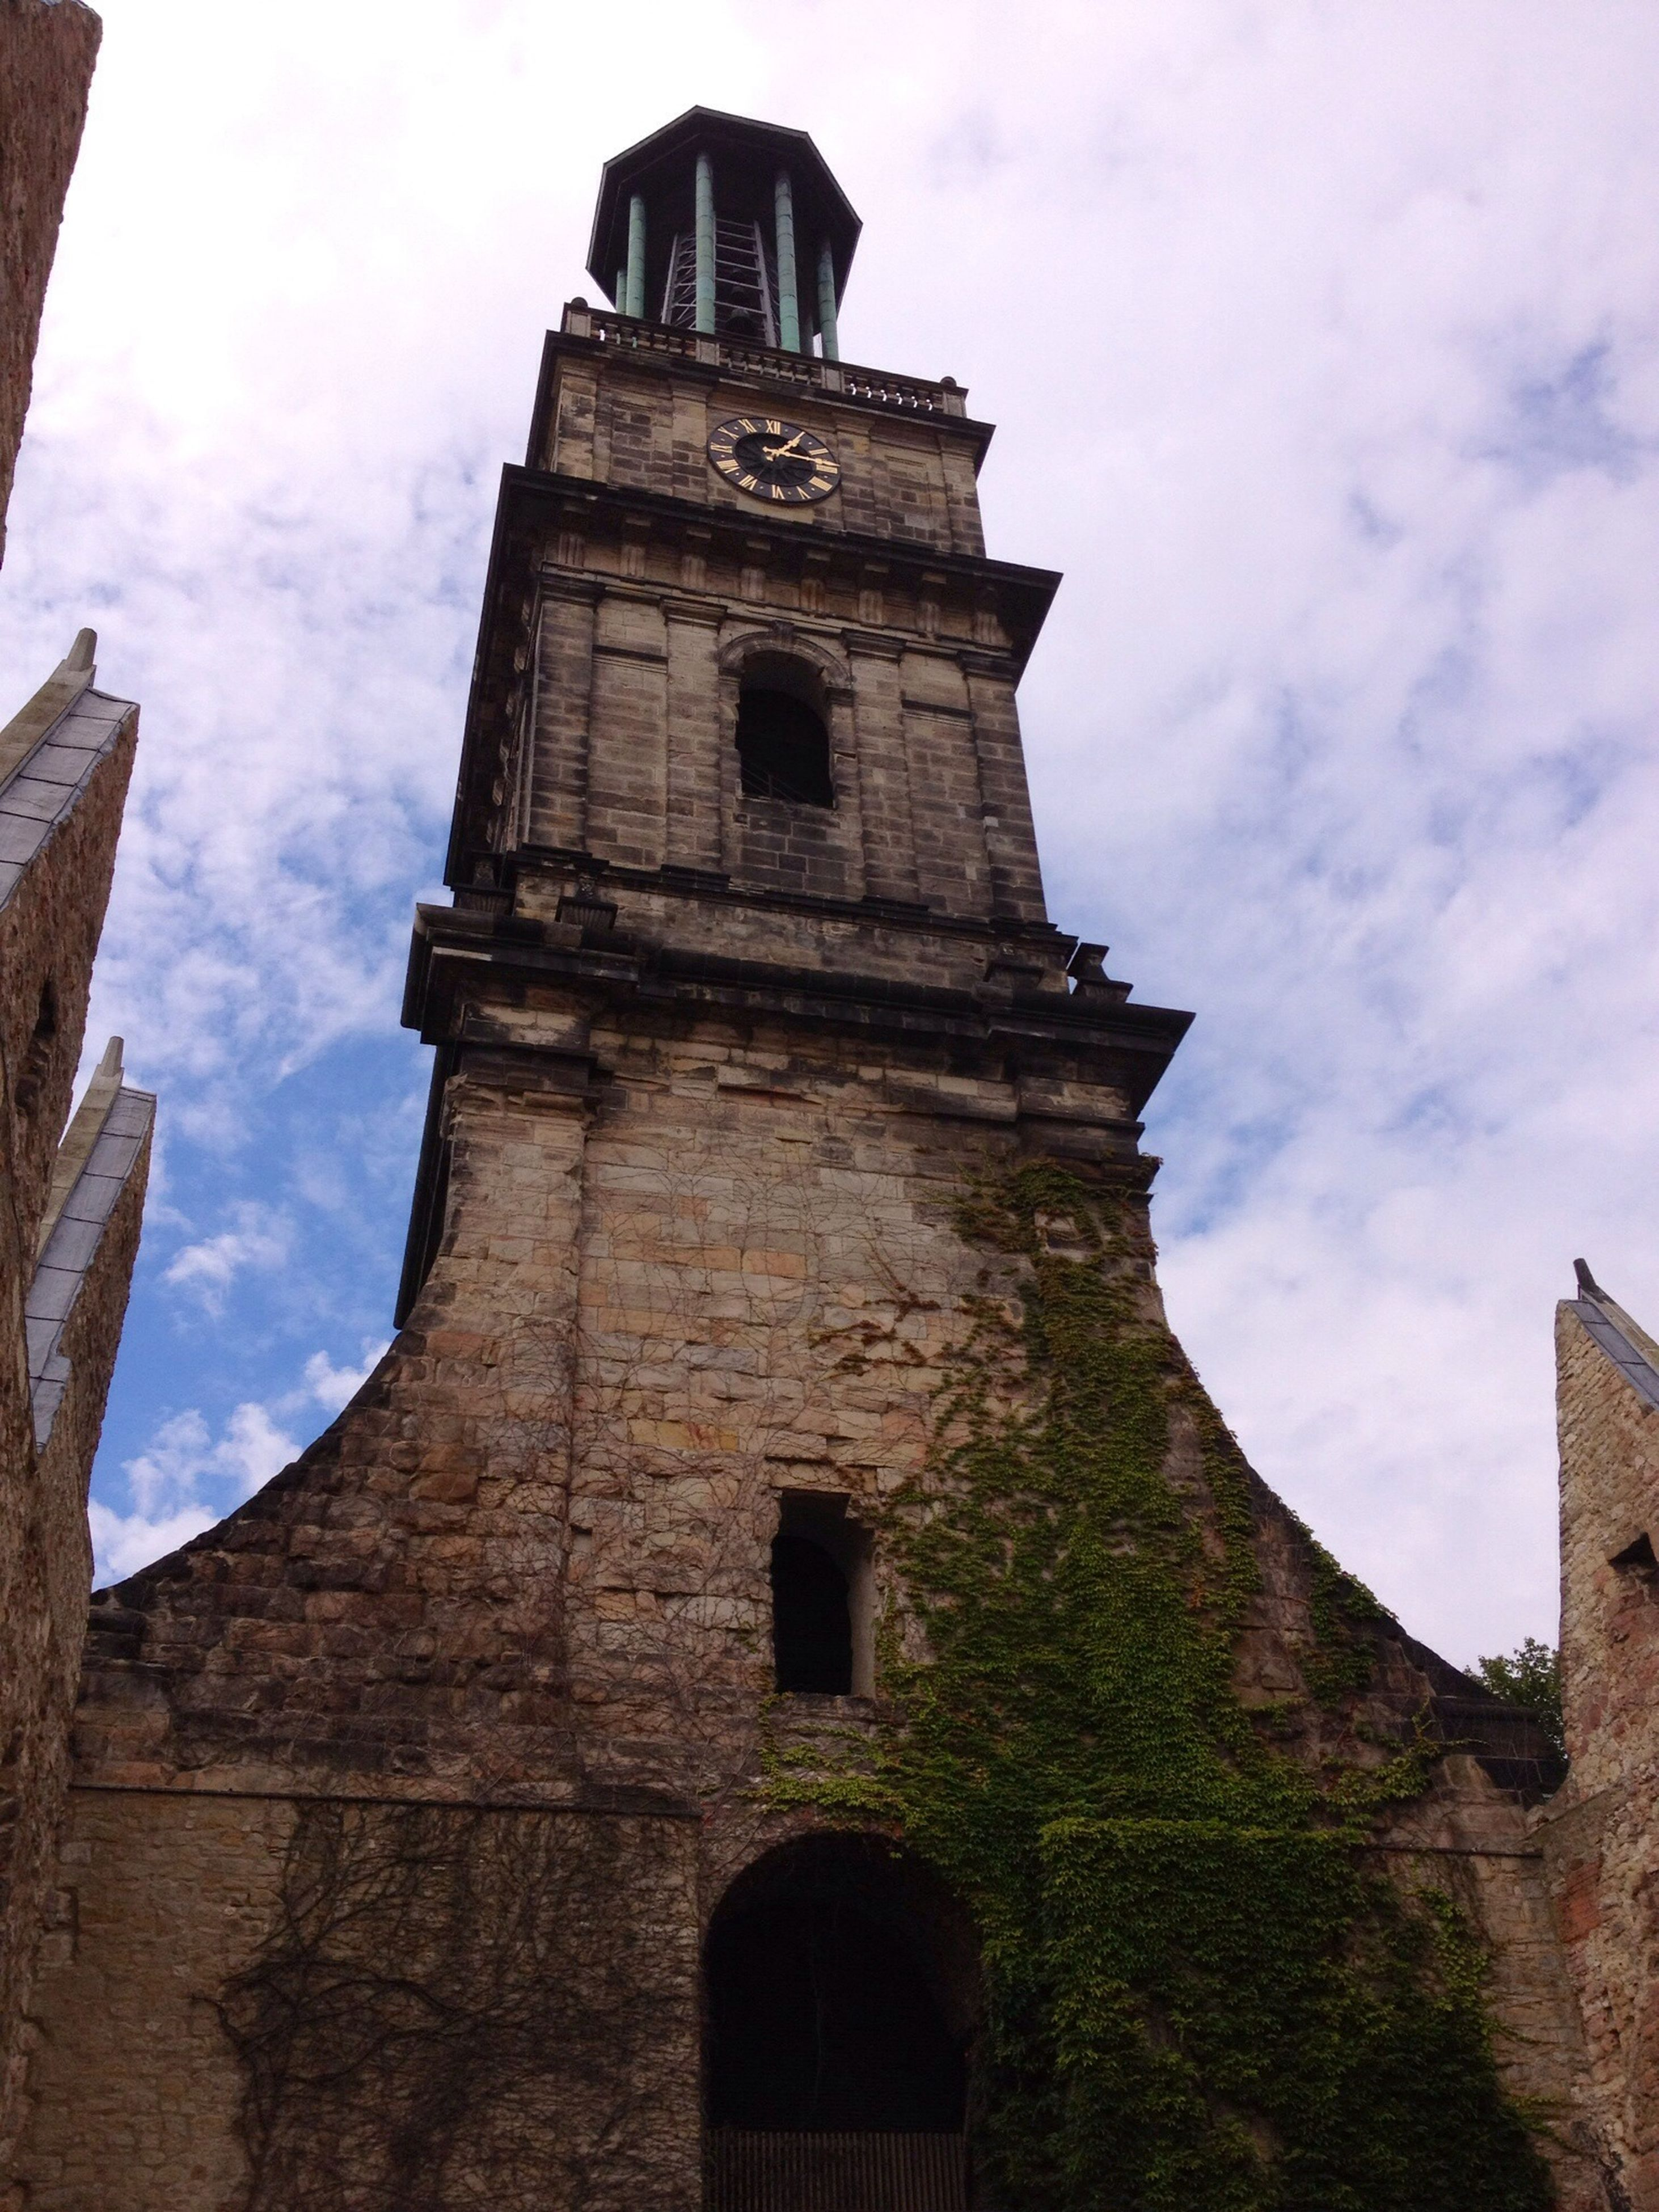 architecture, built structure, building exterior, low angle view, sky, history, cloud - sky, old, tower, the past, religion, famous place, arch, church, travel destinations, cloudy, cloud, clock tower, travel